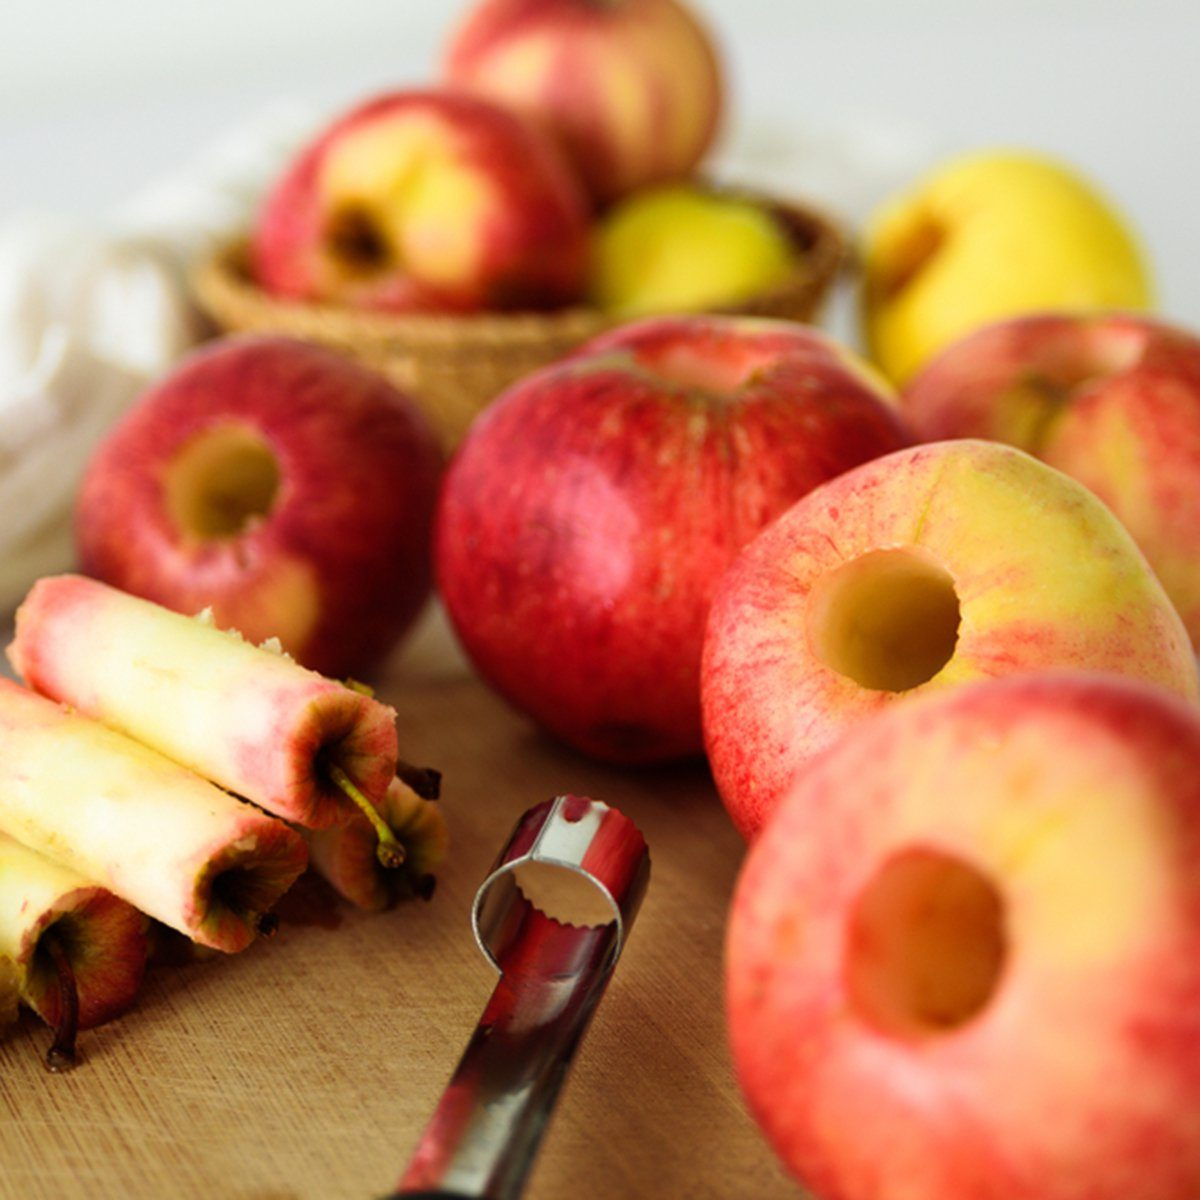 Fresh apples without core.